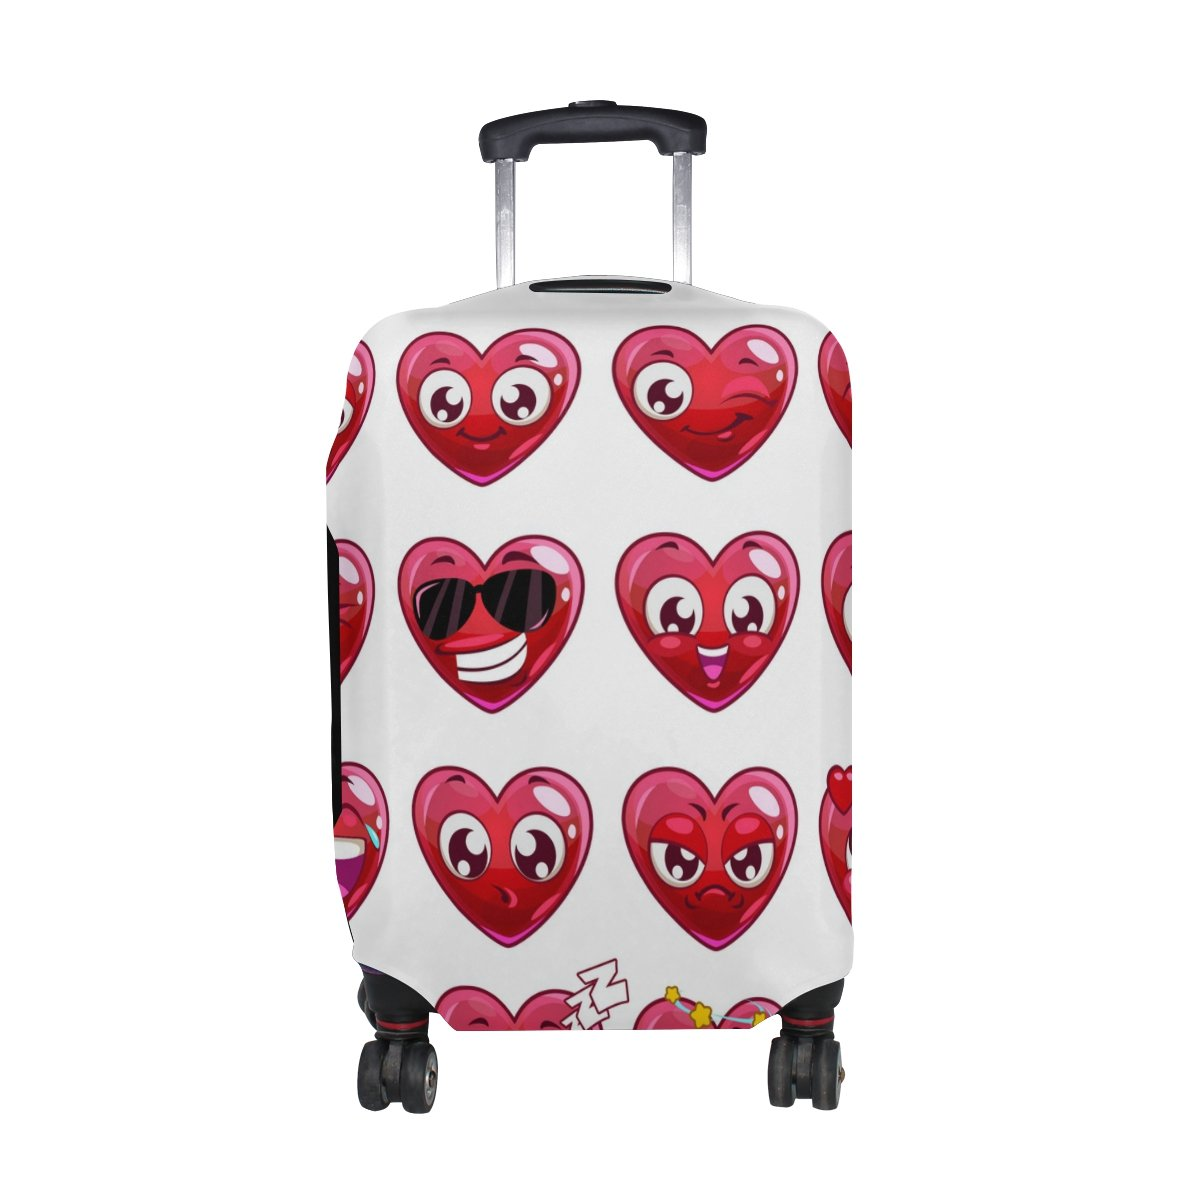 U LIFE Cute Happy Emoji Love Heart Luggage Suitcase Cover Protector for Travel